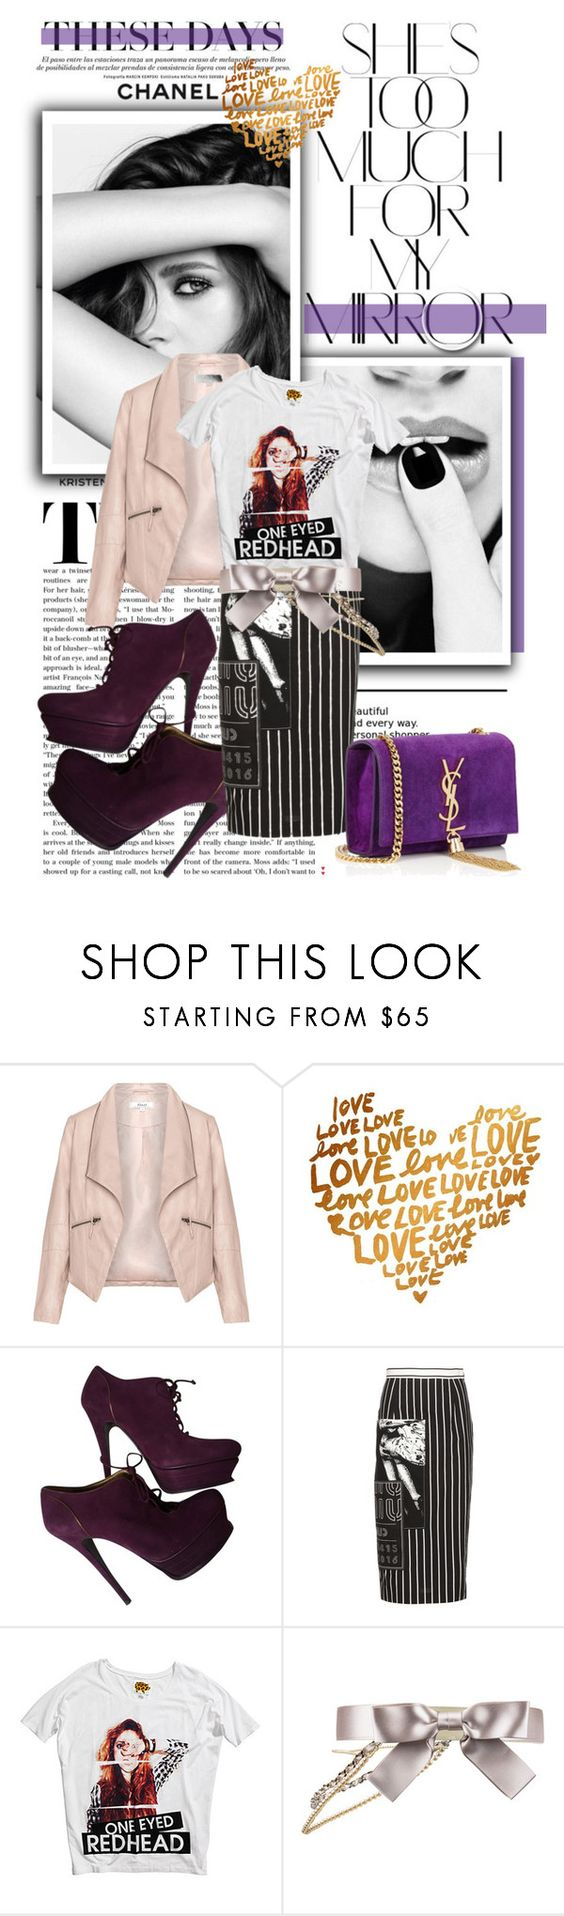 """""""Kristen Stewart"""" by thestrawberryfields ❤ liked on Polyvore featuring Rika, Chanel, Zizzi, Yves Saint Laurent, Miu Miu and H&M"""